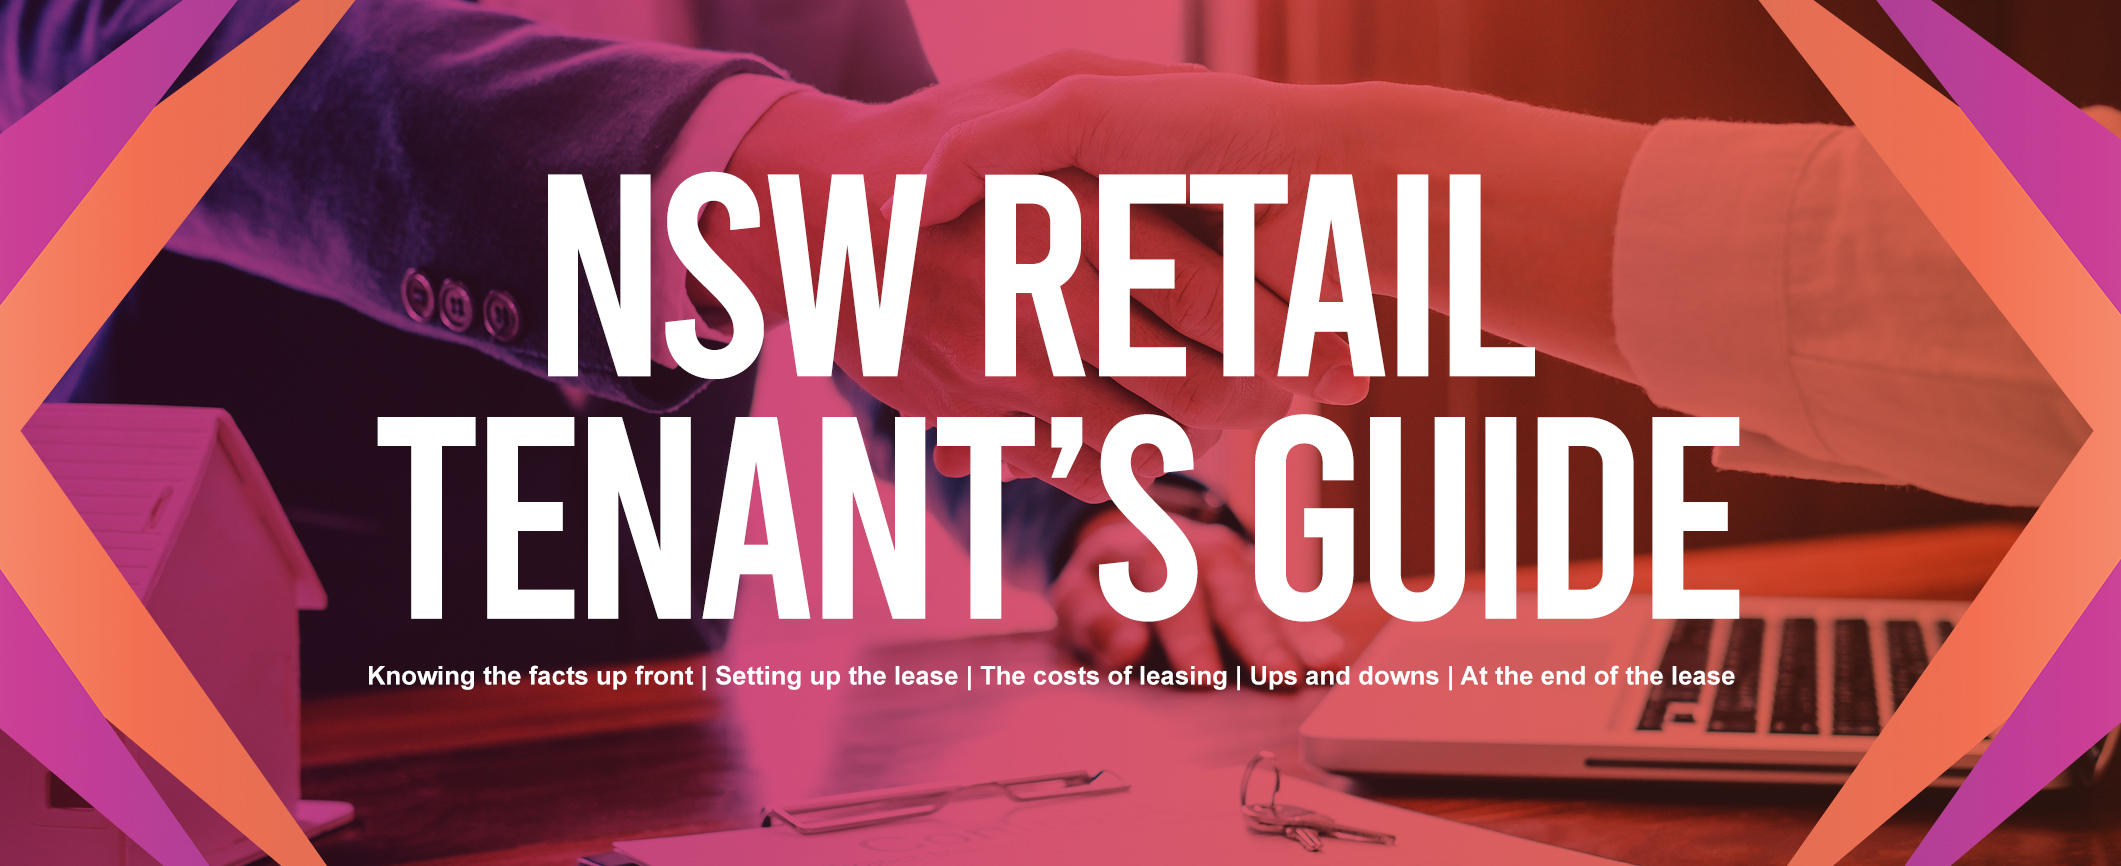 NSW Retail Tenant's Guide